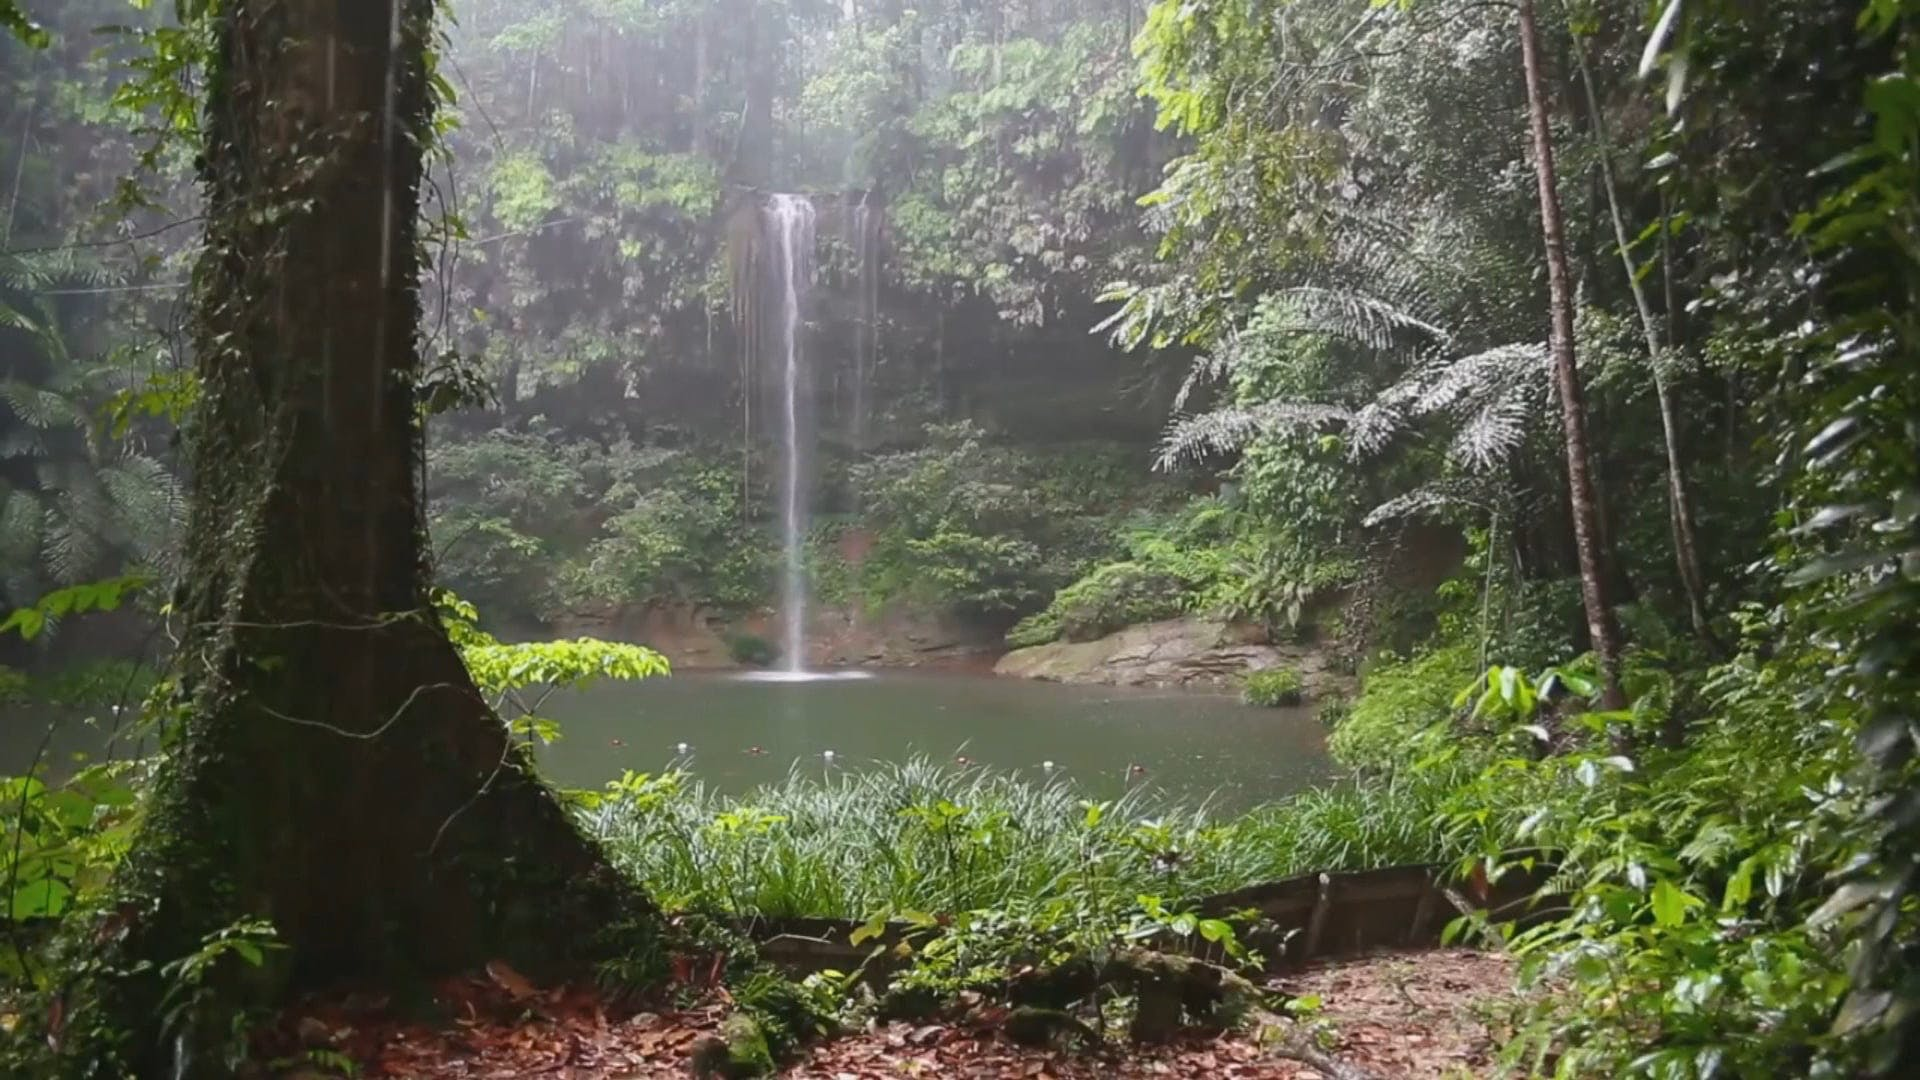 View Of The Woods With Waterfalls On A Rainy Day